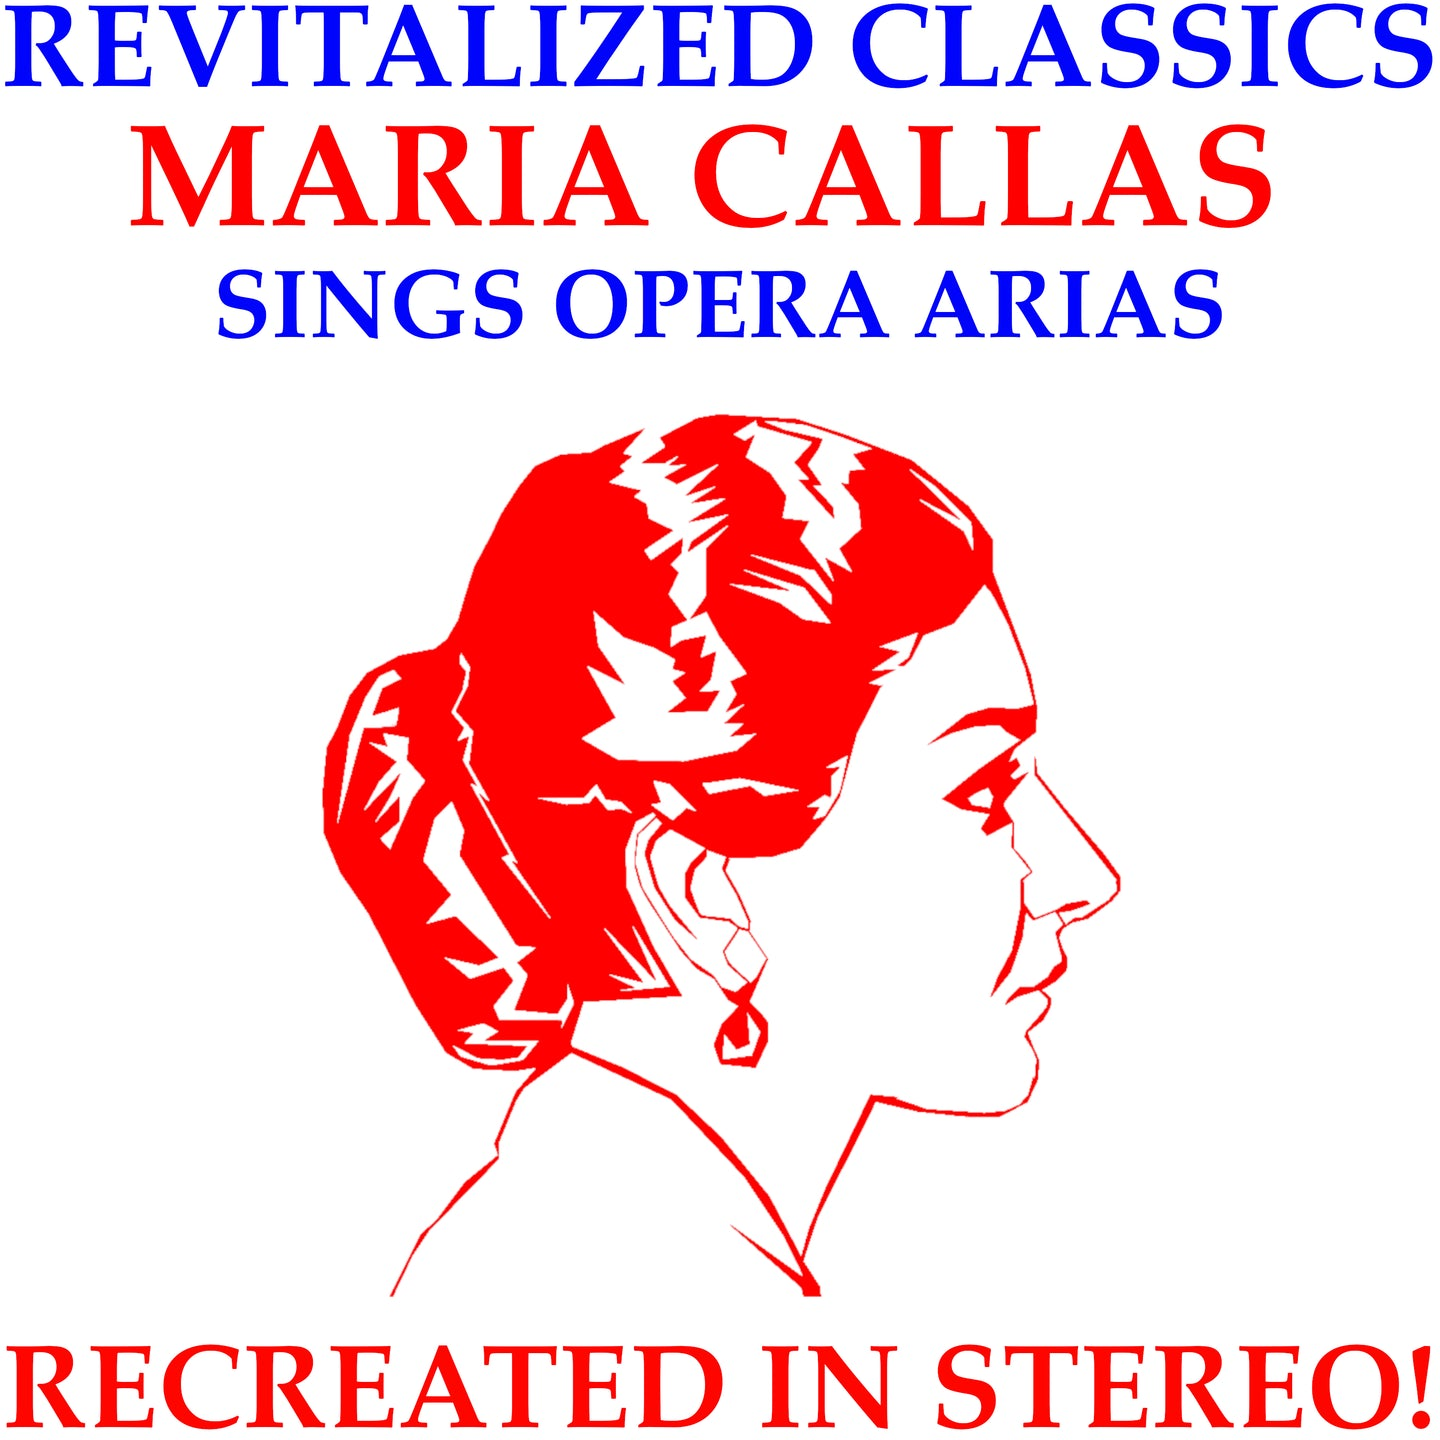 Revitalized Classics: Callas sings opera arias - Recreated in Stereo!